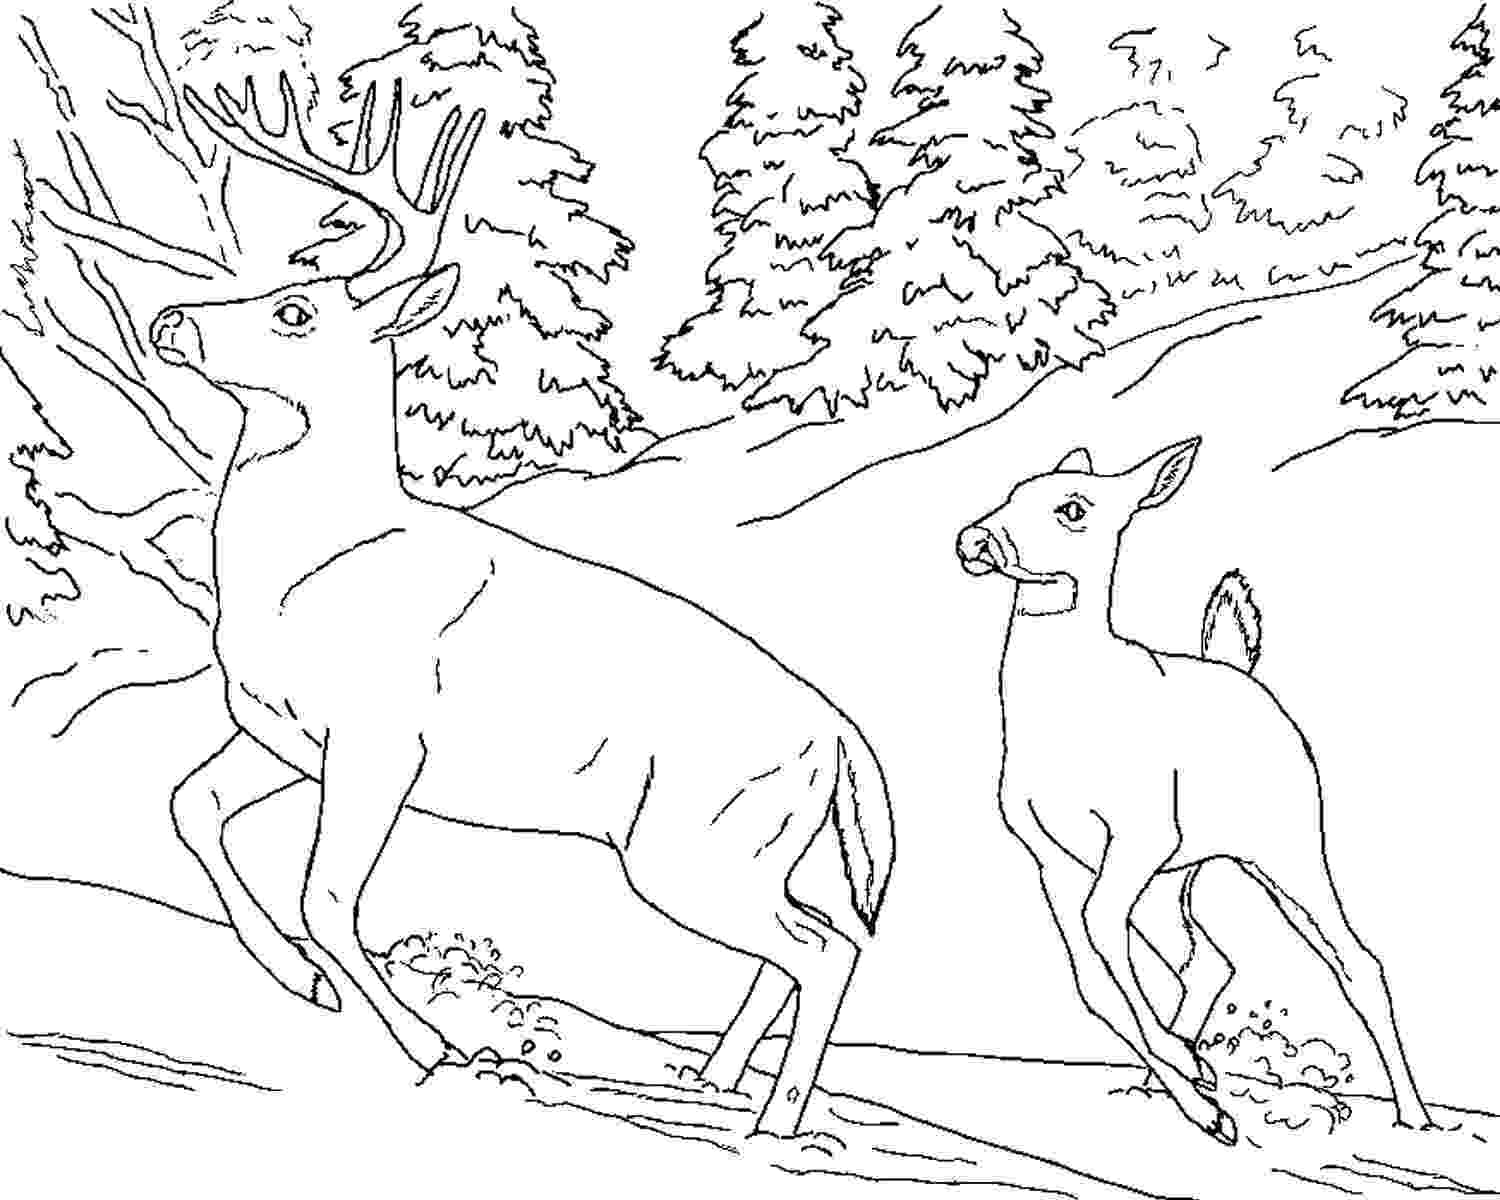 whitetail deer coloring pages deer drawing on pinterest deer antlers and be awesome pages coloring deer whitetail